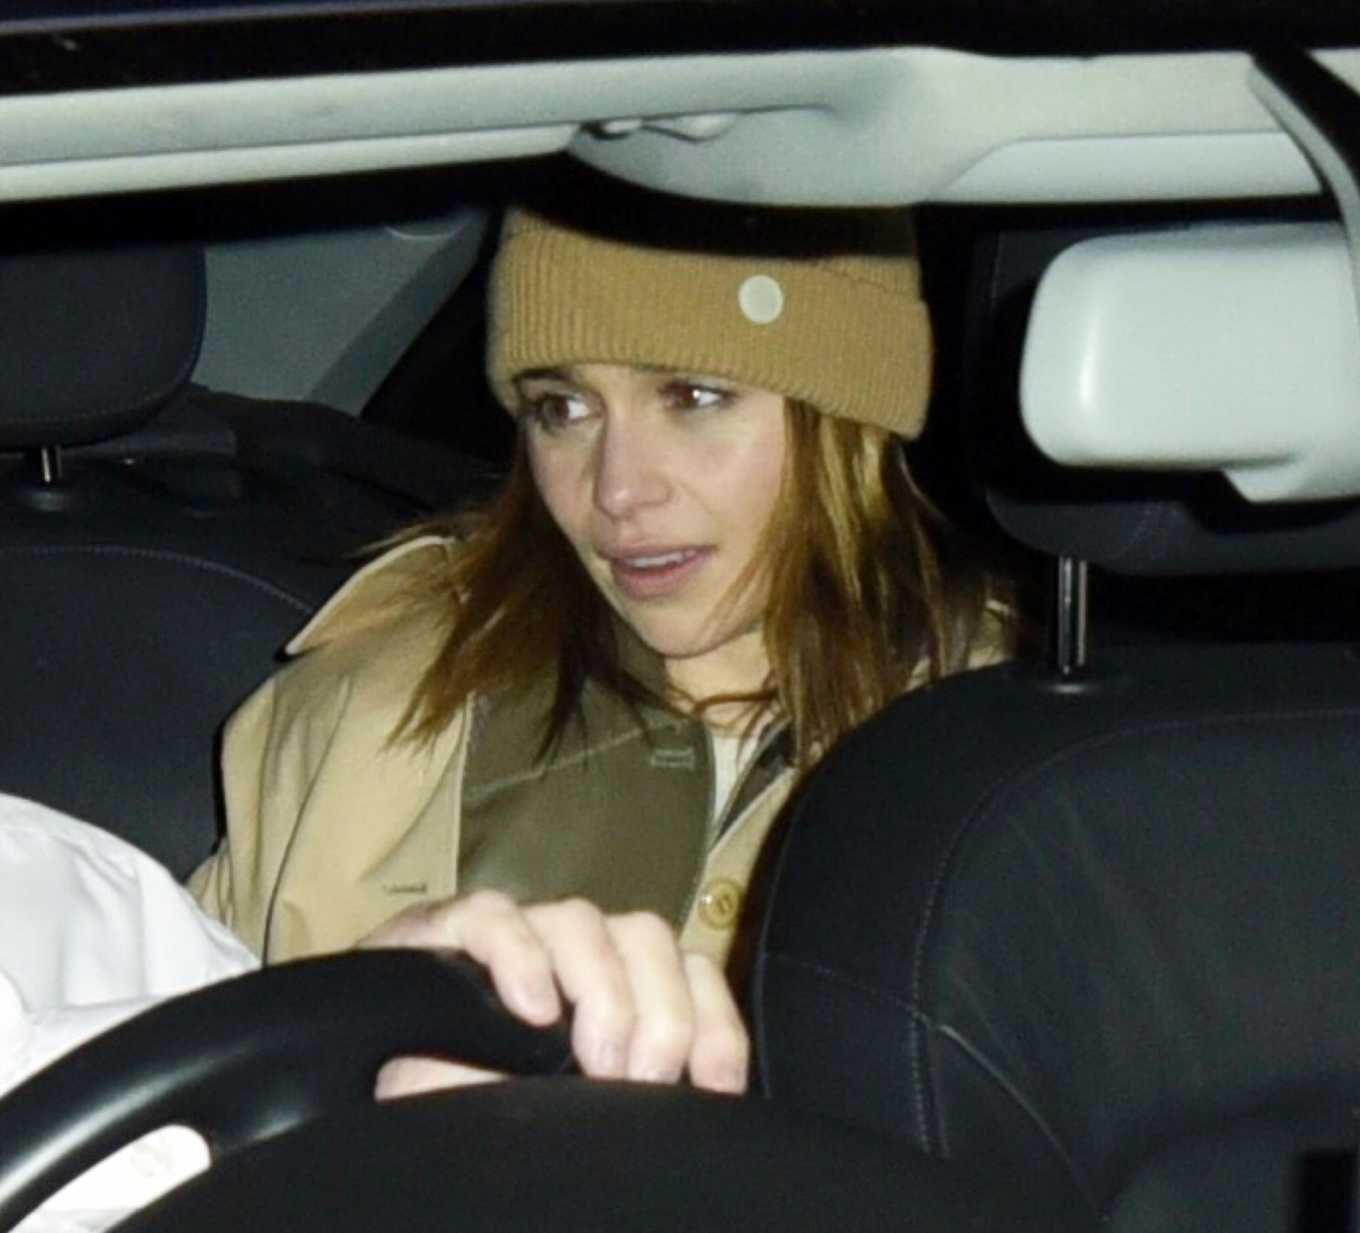 Emilia Clarke leaving the West End play 'The Seagull'